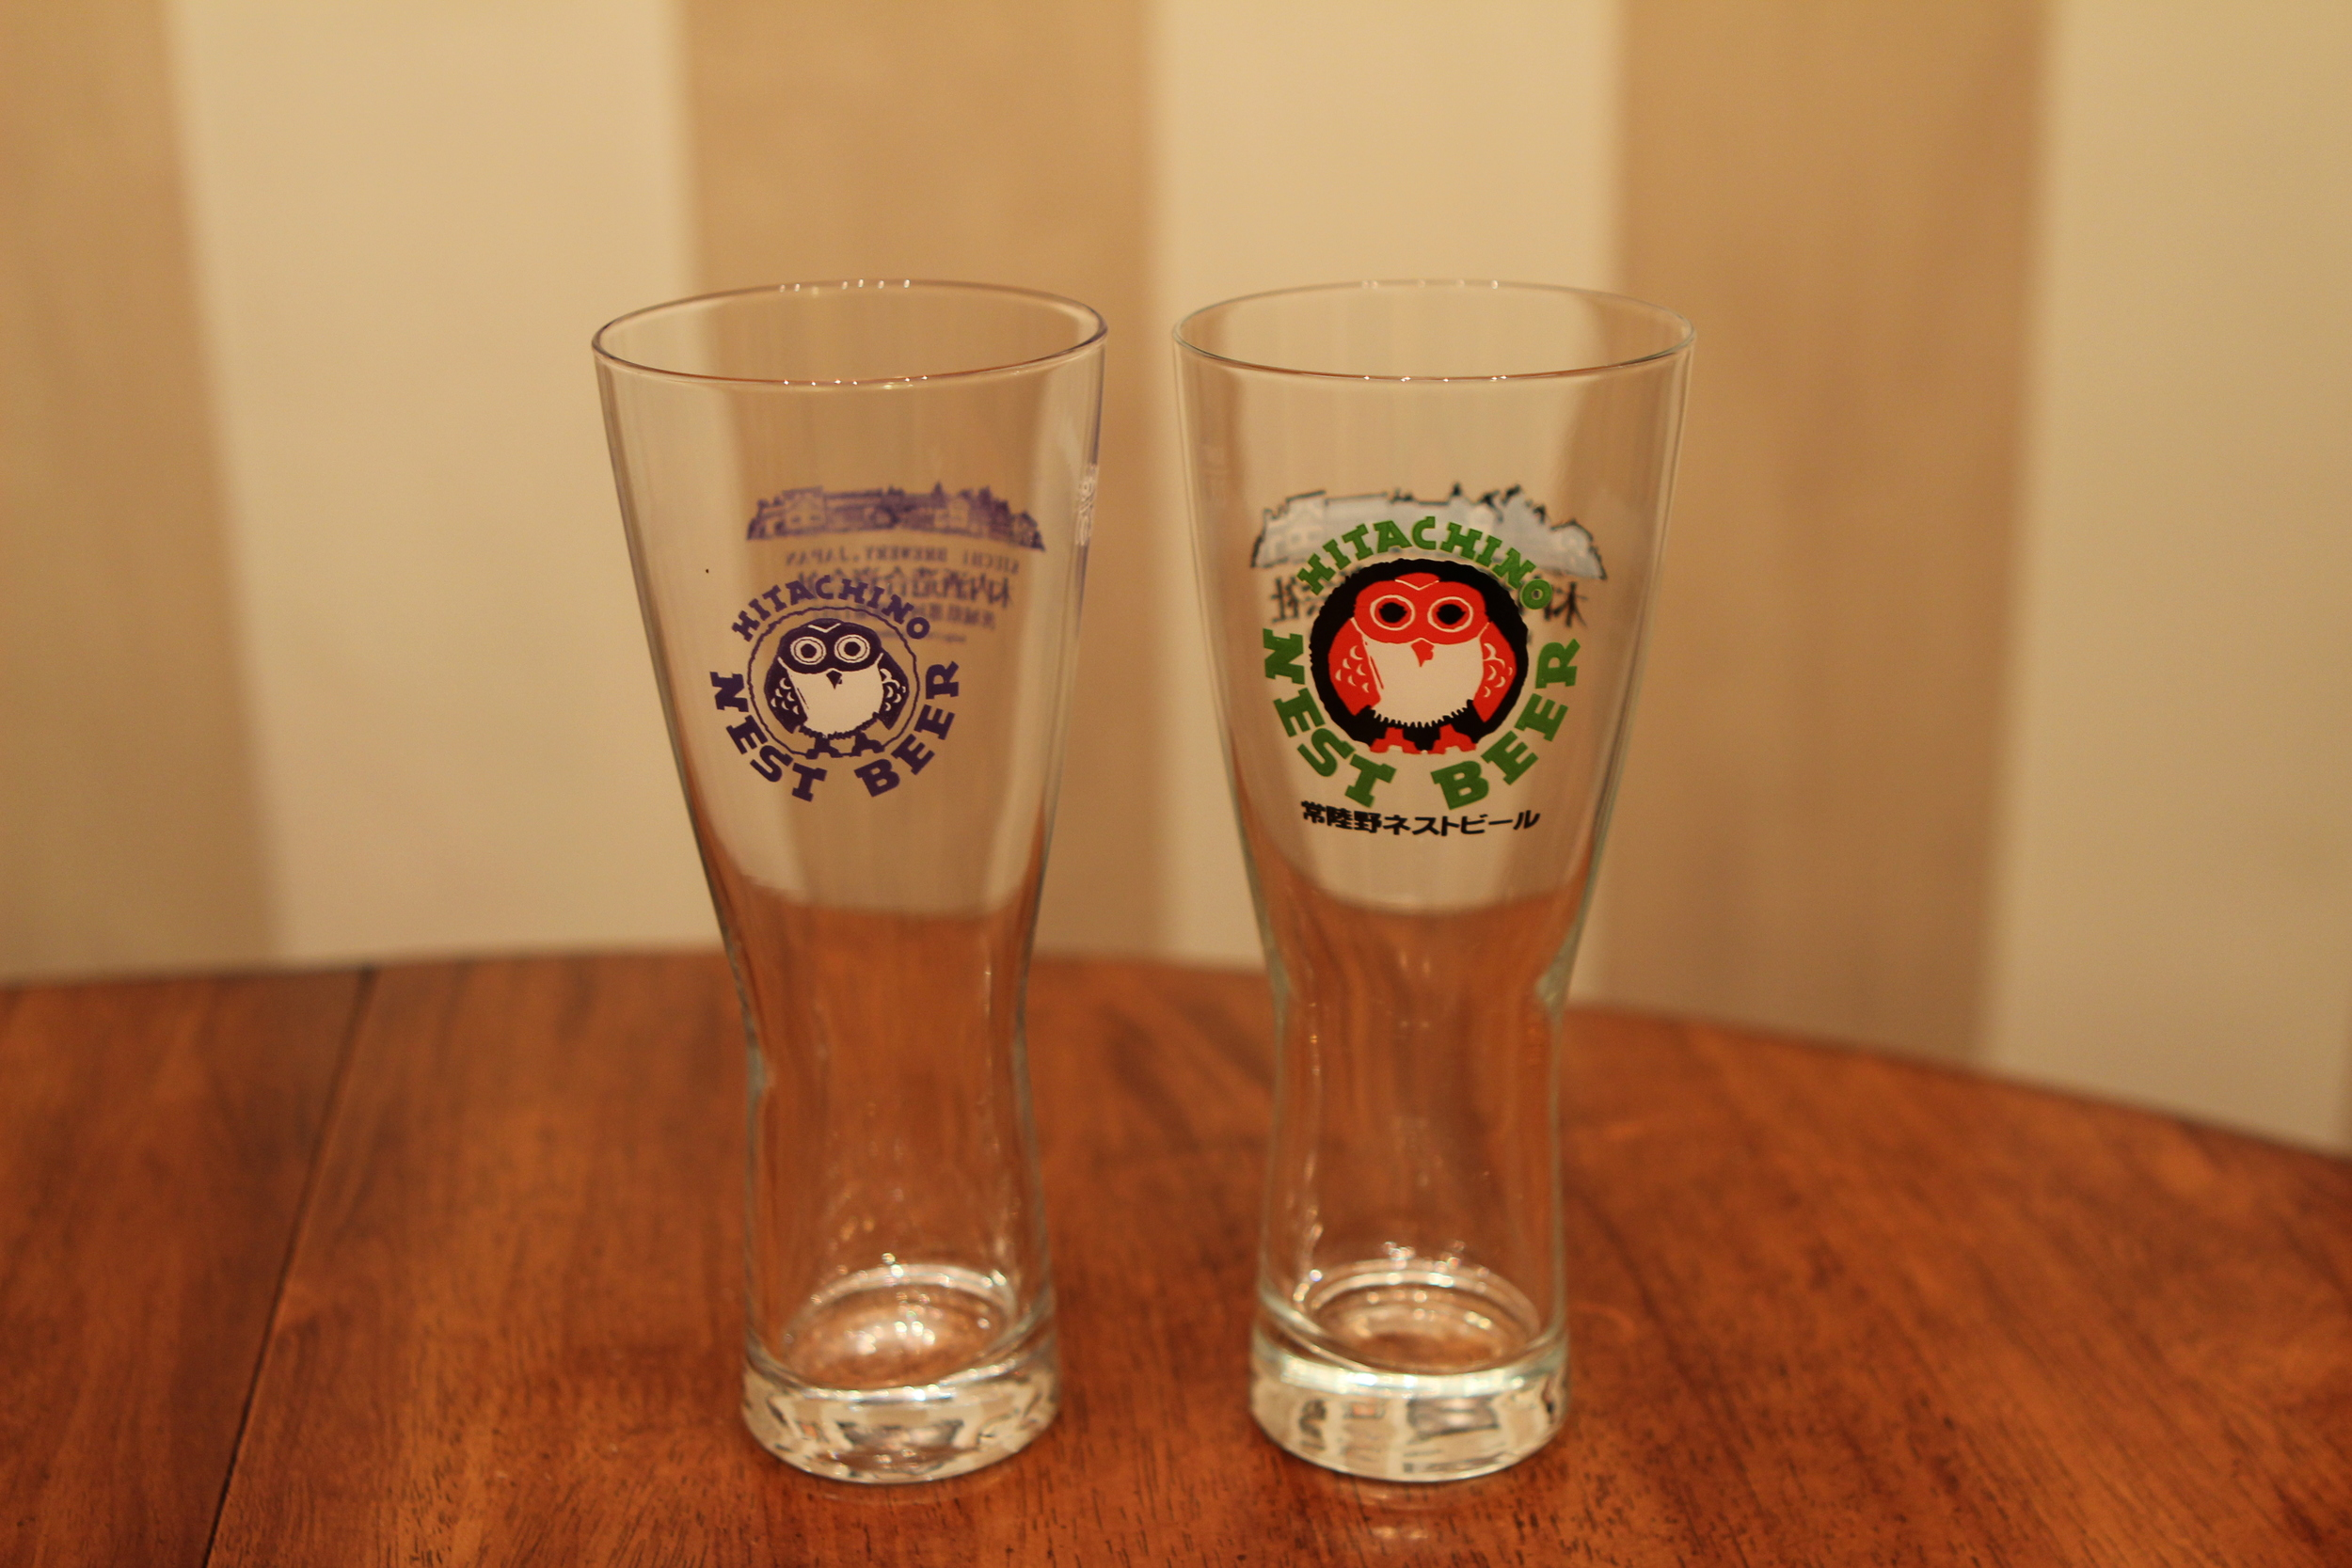 Old and new design on the glasses